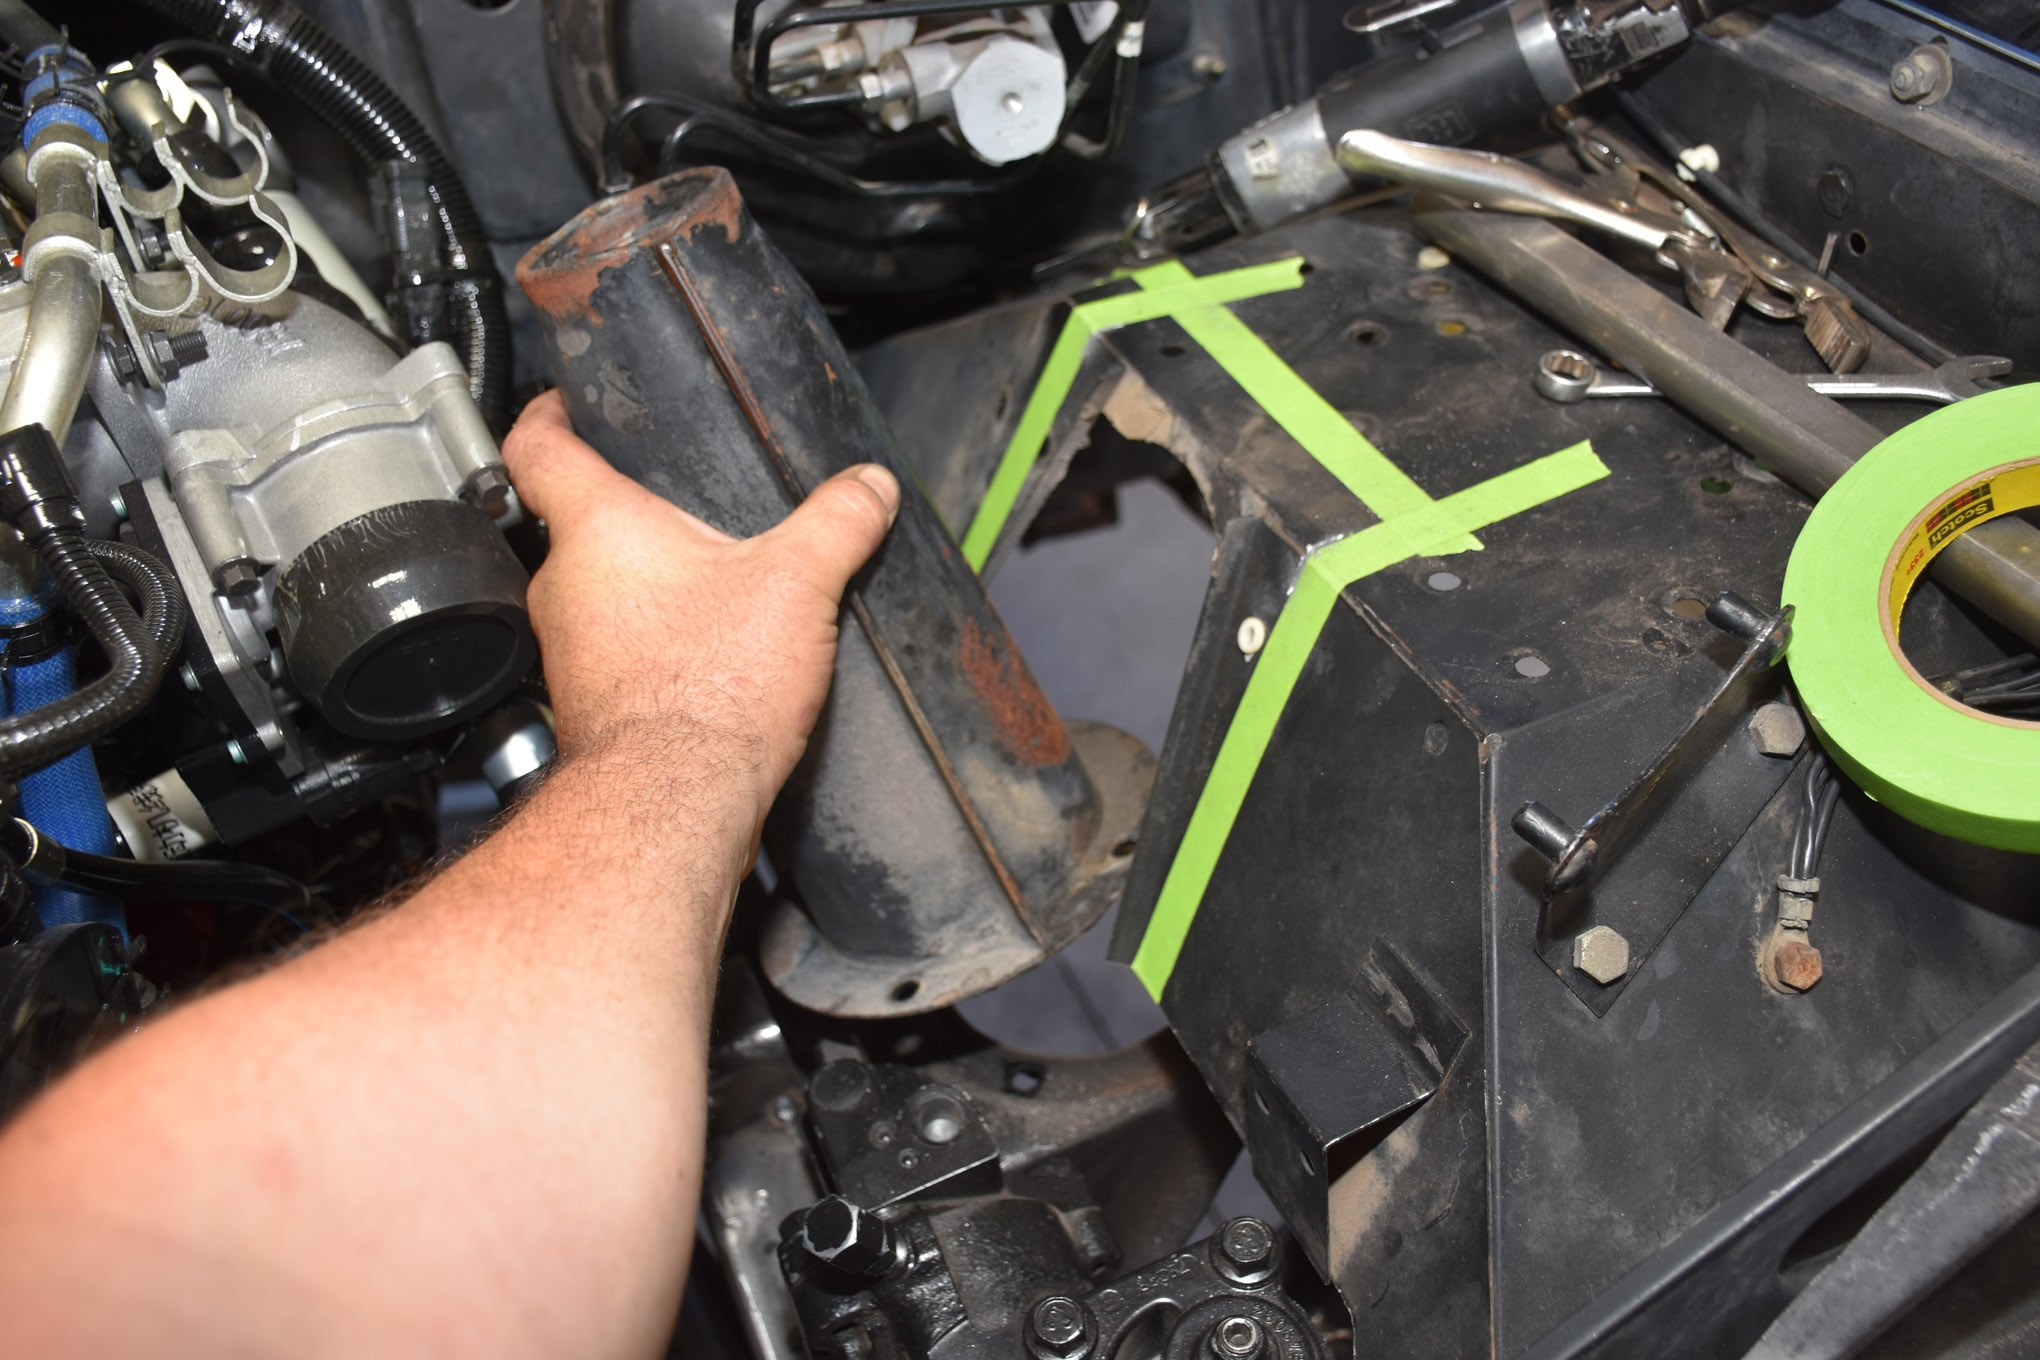 With the right-hand-drive JK steering box from West Texas Offroad roughly in place and connected to the steering column with Borgeson steering U-joints and a collapsible shaft, we started fabbing up shock mounts for the front of the Derange Rover. We mocked up shock towers for Skyjacker LeDuc series coilovers using cardboard. First step was to remove the factory shock mount and part of the coil mount.